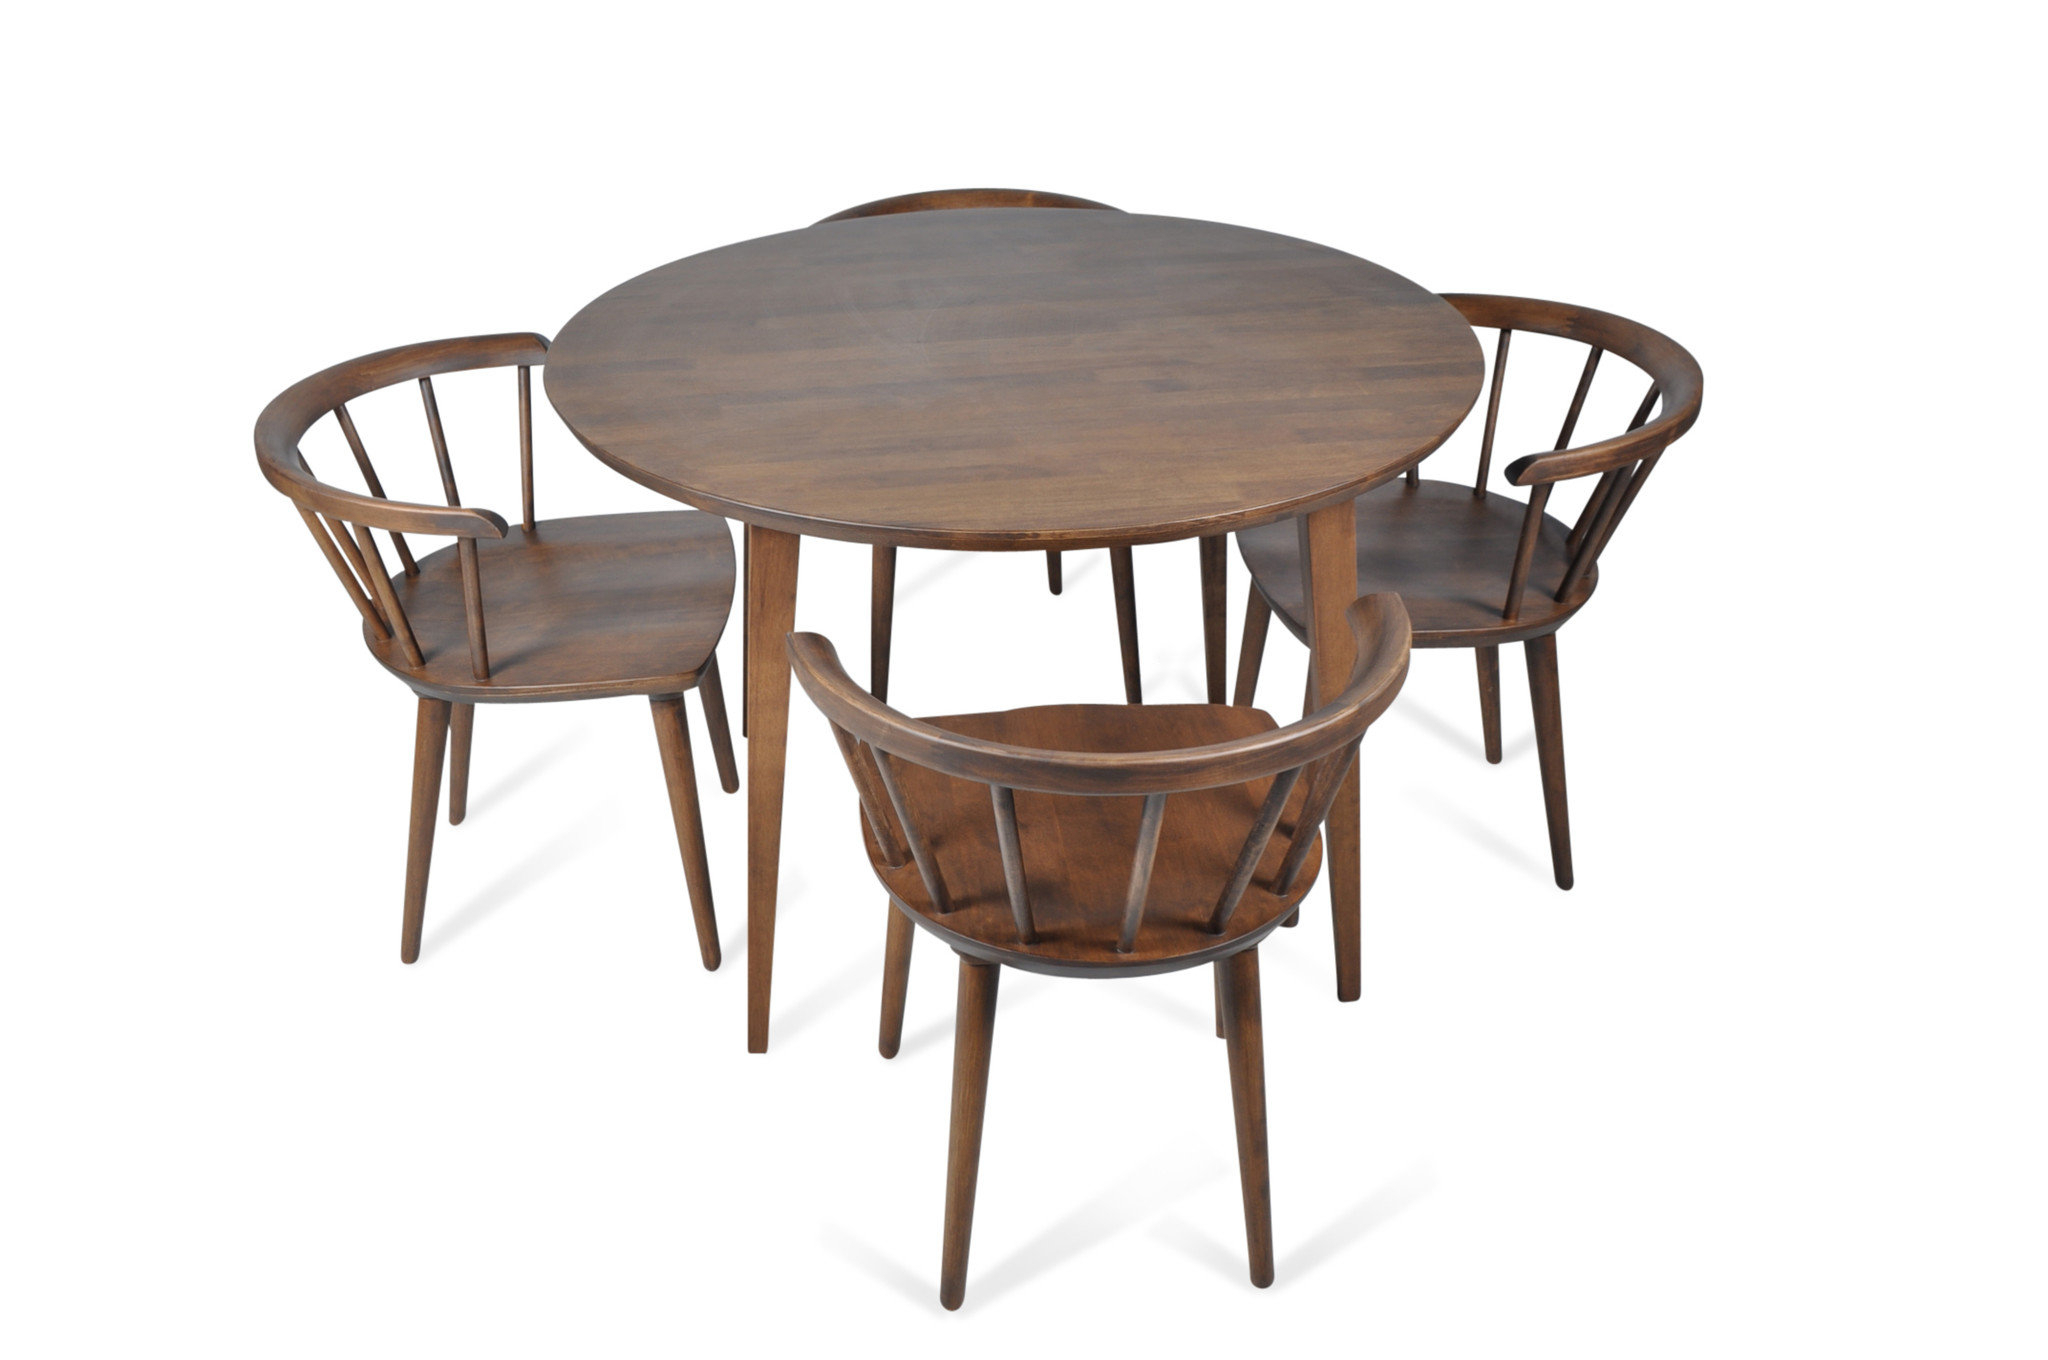 Recent 5 Piece Breakfast Nook Dining Sets Pertaining To Burgan 5 Piece Solid Wood Breakfast Nook Dining Set & Reviews (View 14 of 25)